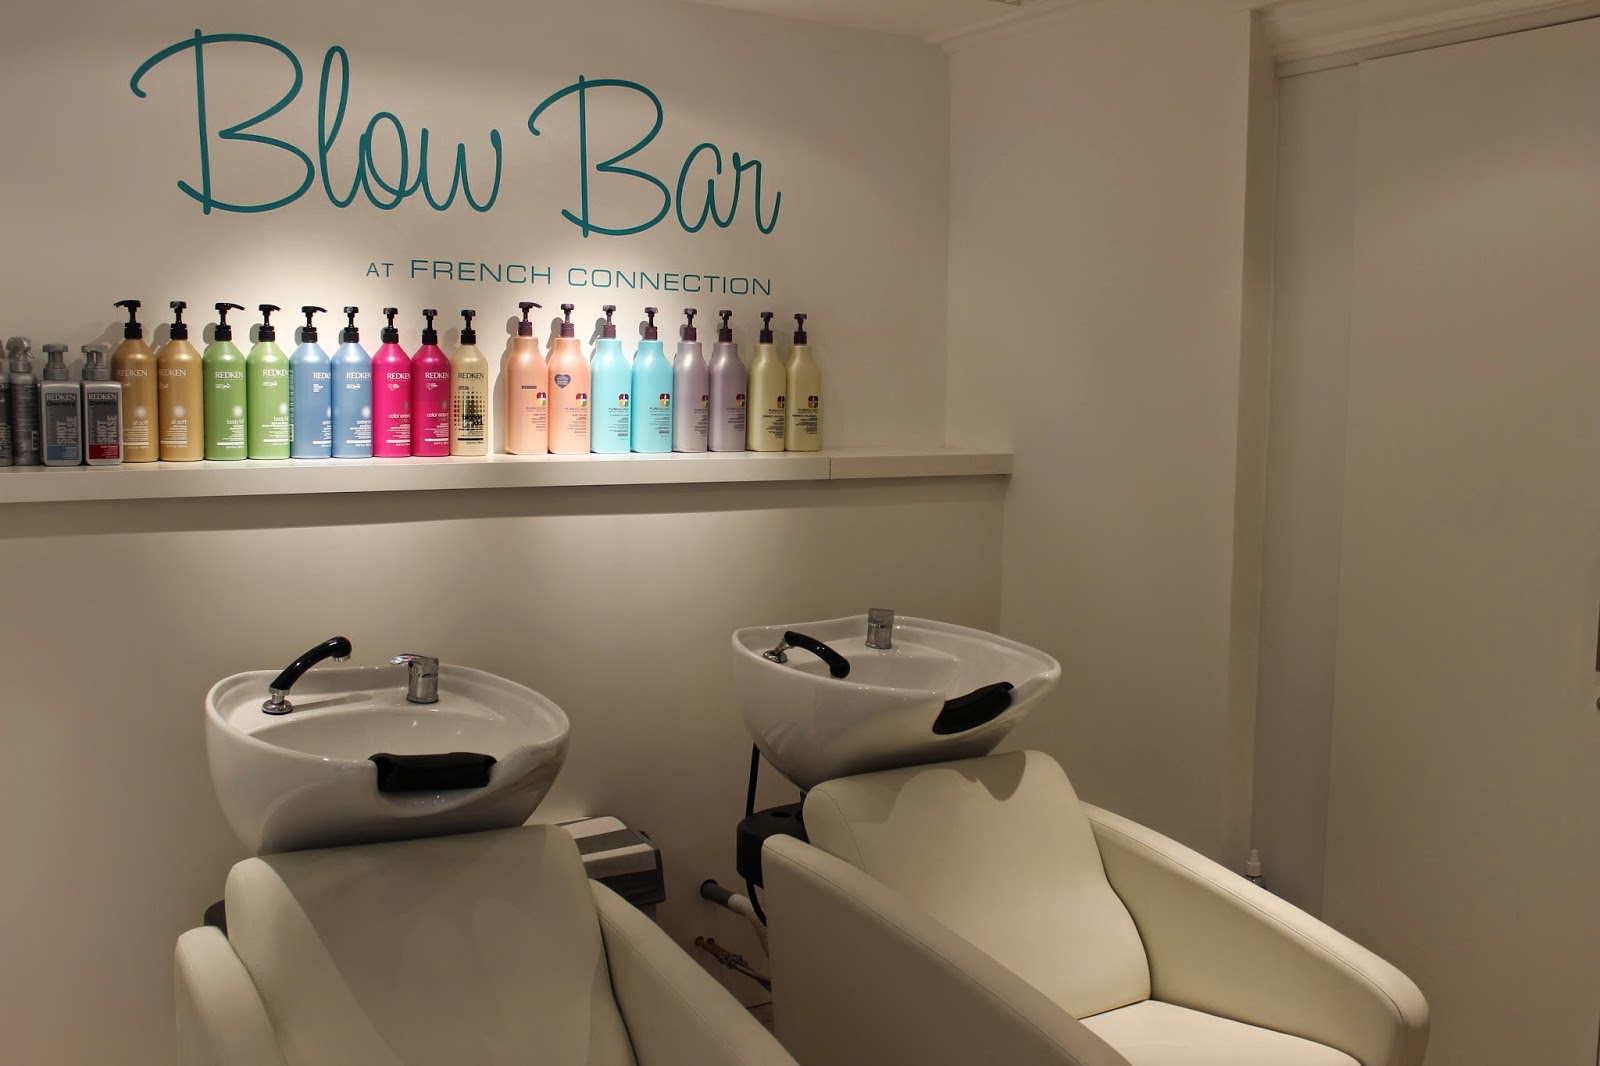 The Blow Bar At French Connection